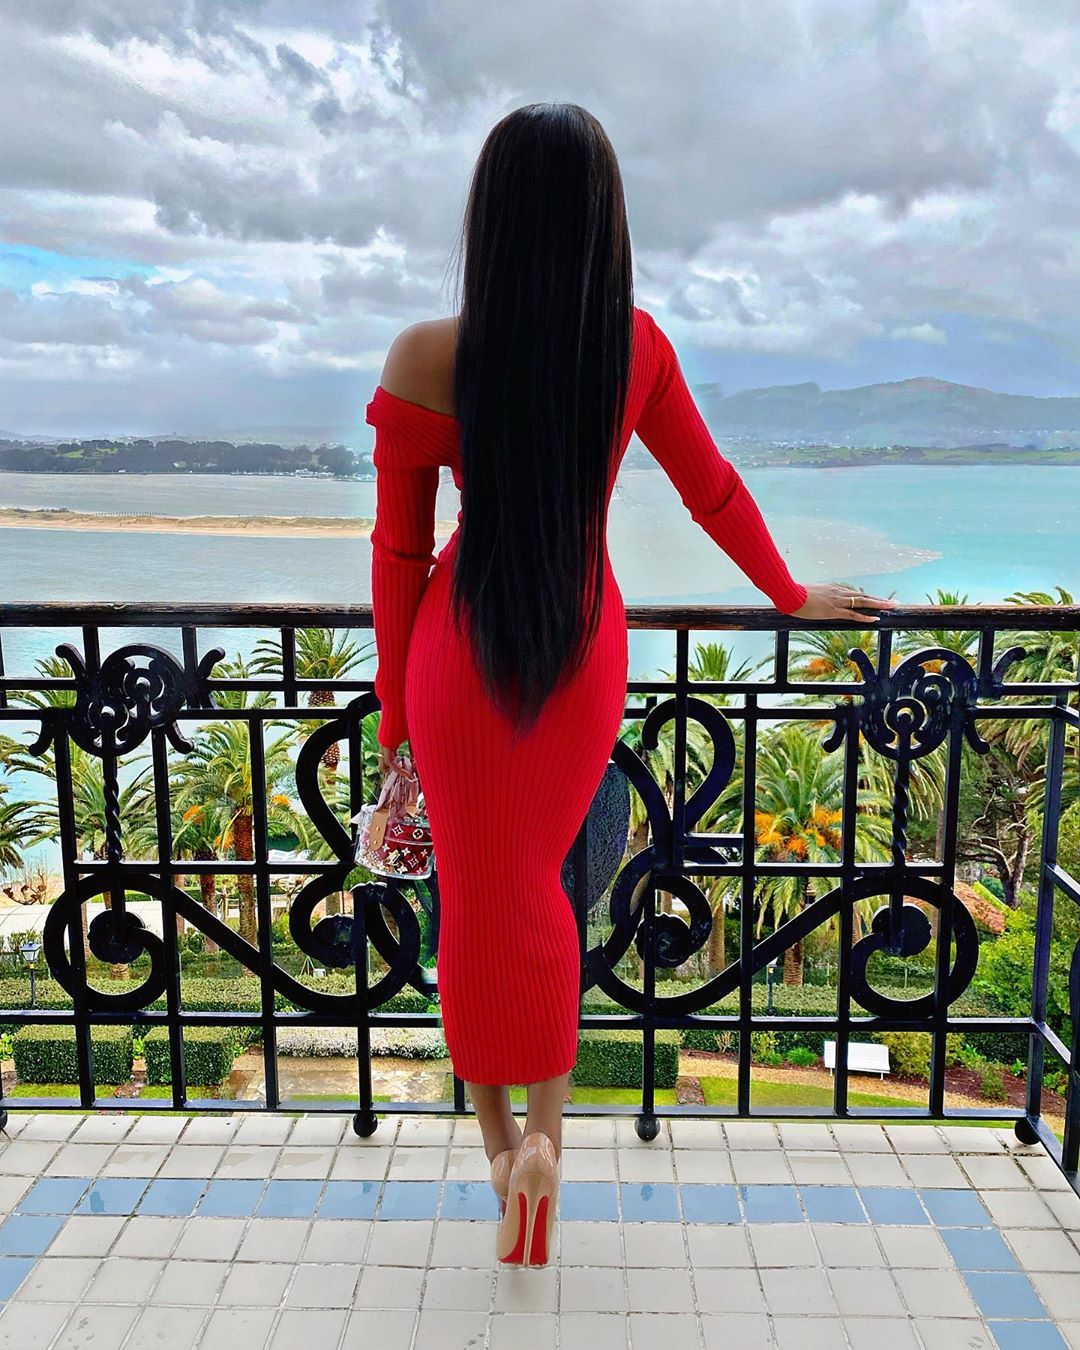 Marii Pazz On Instagram In Myoutfitonline Dress Use My Code Pazz For 20 Discount Fashion Clothes Women Red Sweater Dress Fashion [ 1350 x 1080 Pixel ]